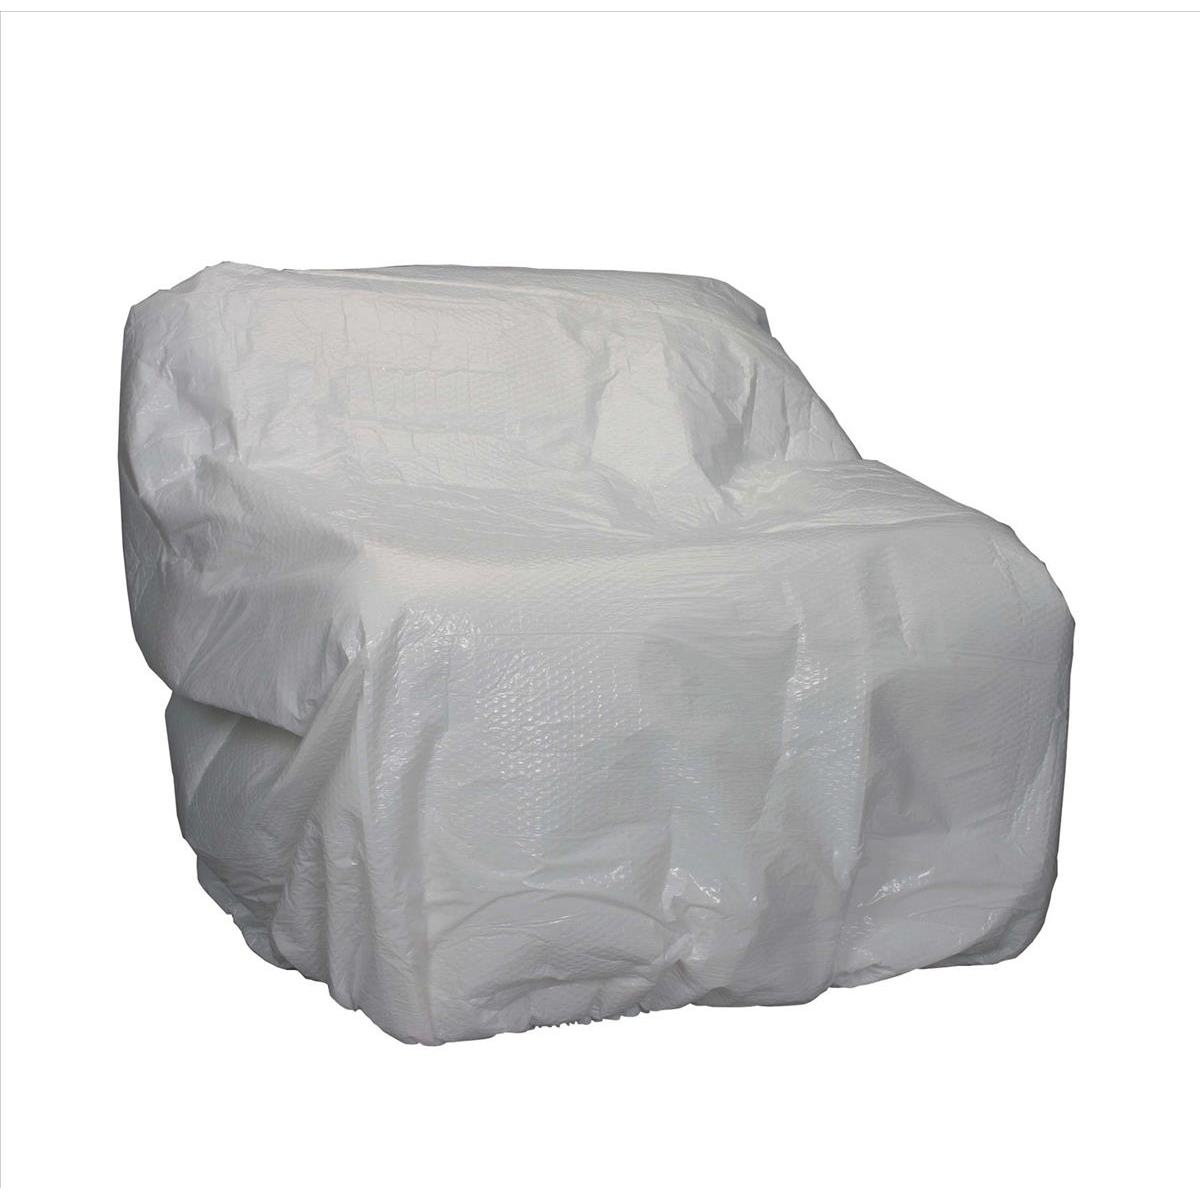 Jiffy Furni-soft Roll Soft Low Density Polyethylene Furniture Protection 1200mmx50m Clear Ref BLAM39561